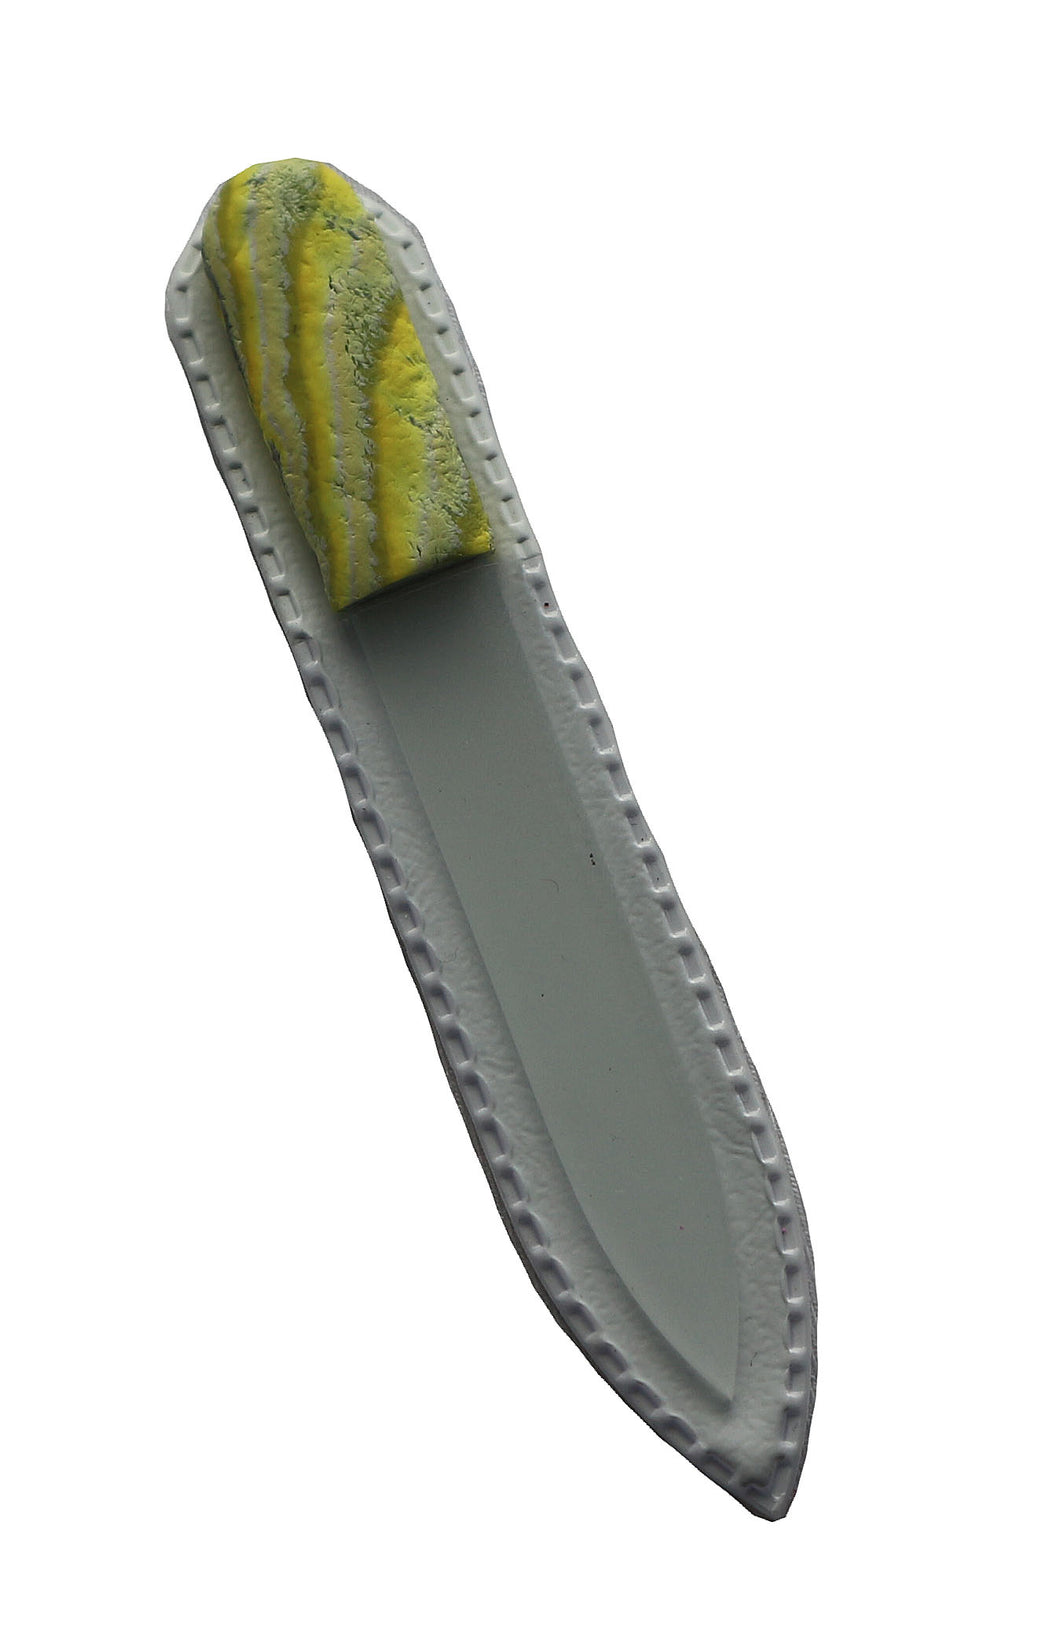 Crystal Nail File-Small-Yellow Green Stripes